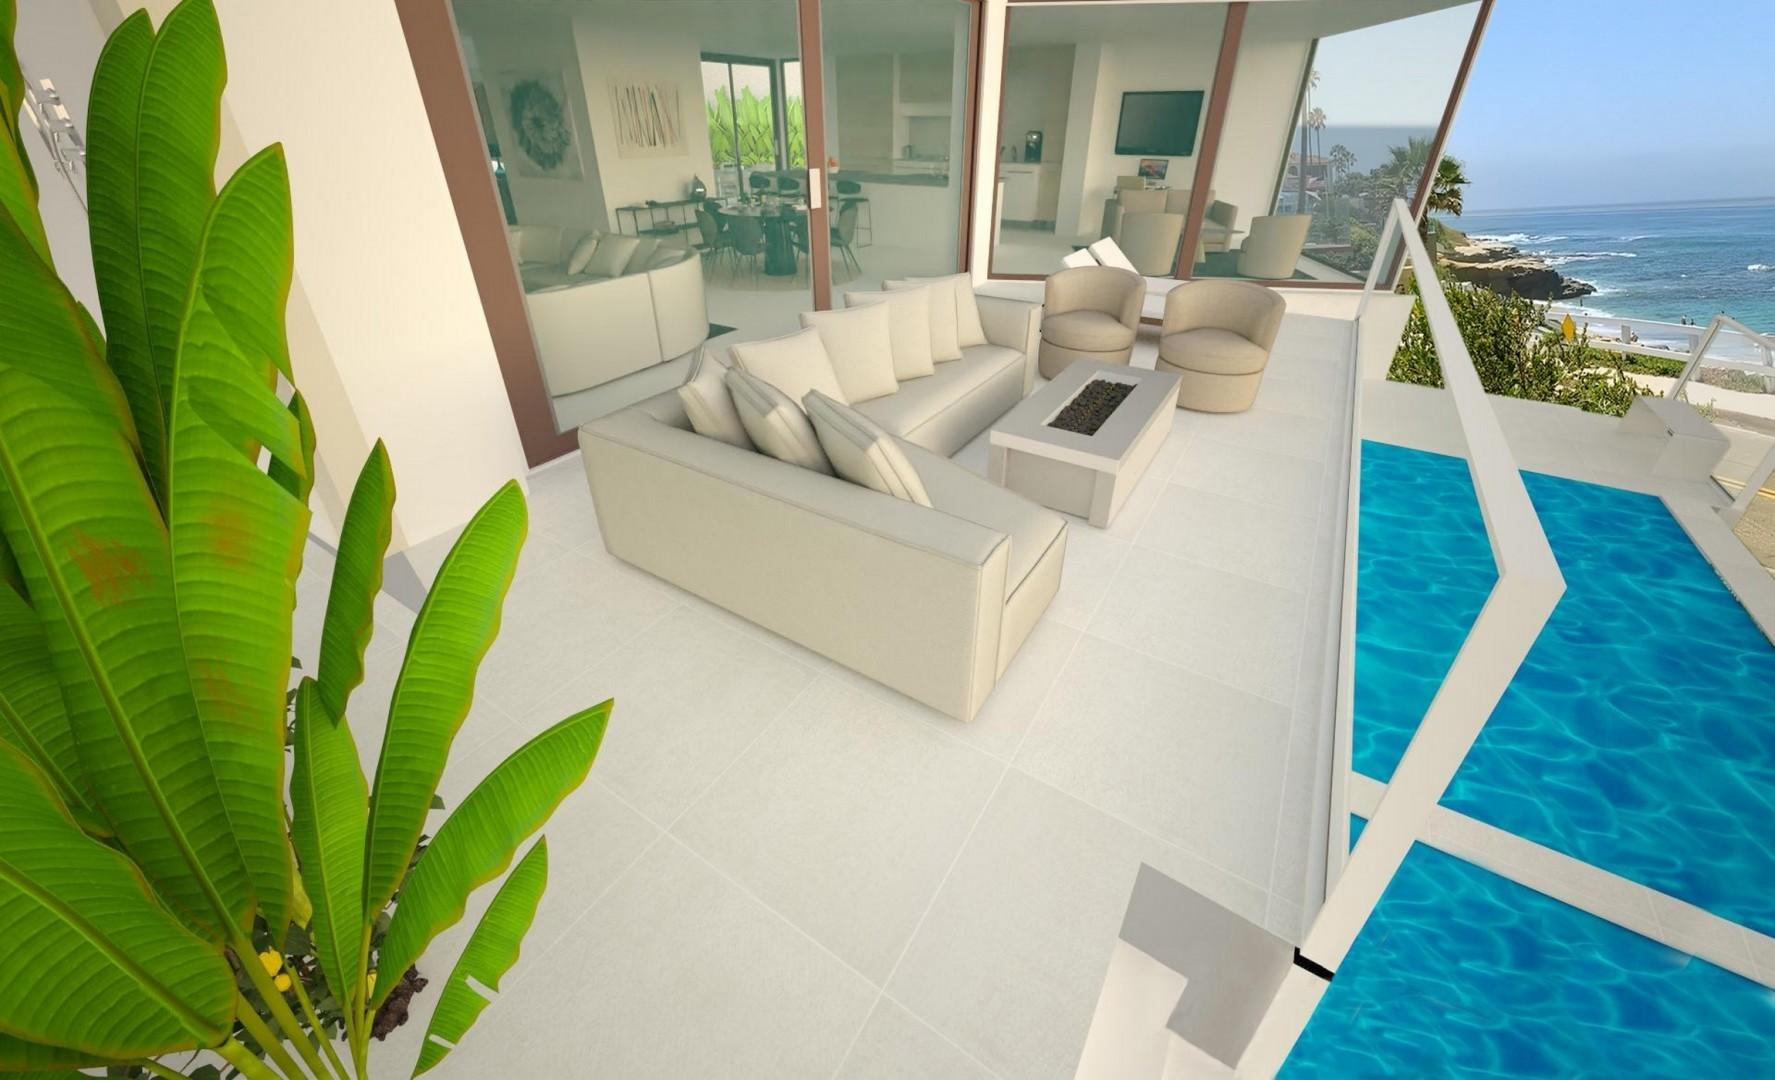 Ocean and pool terrace includes a fire pit